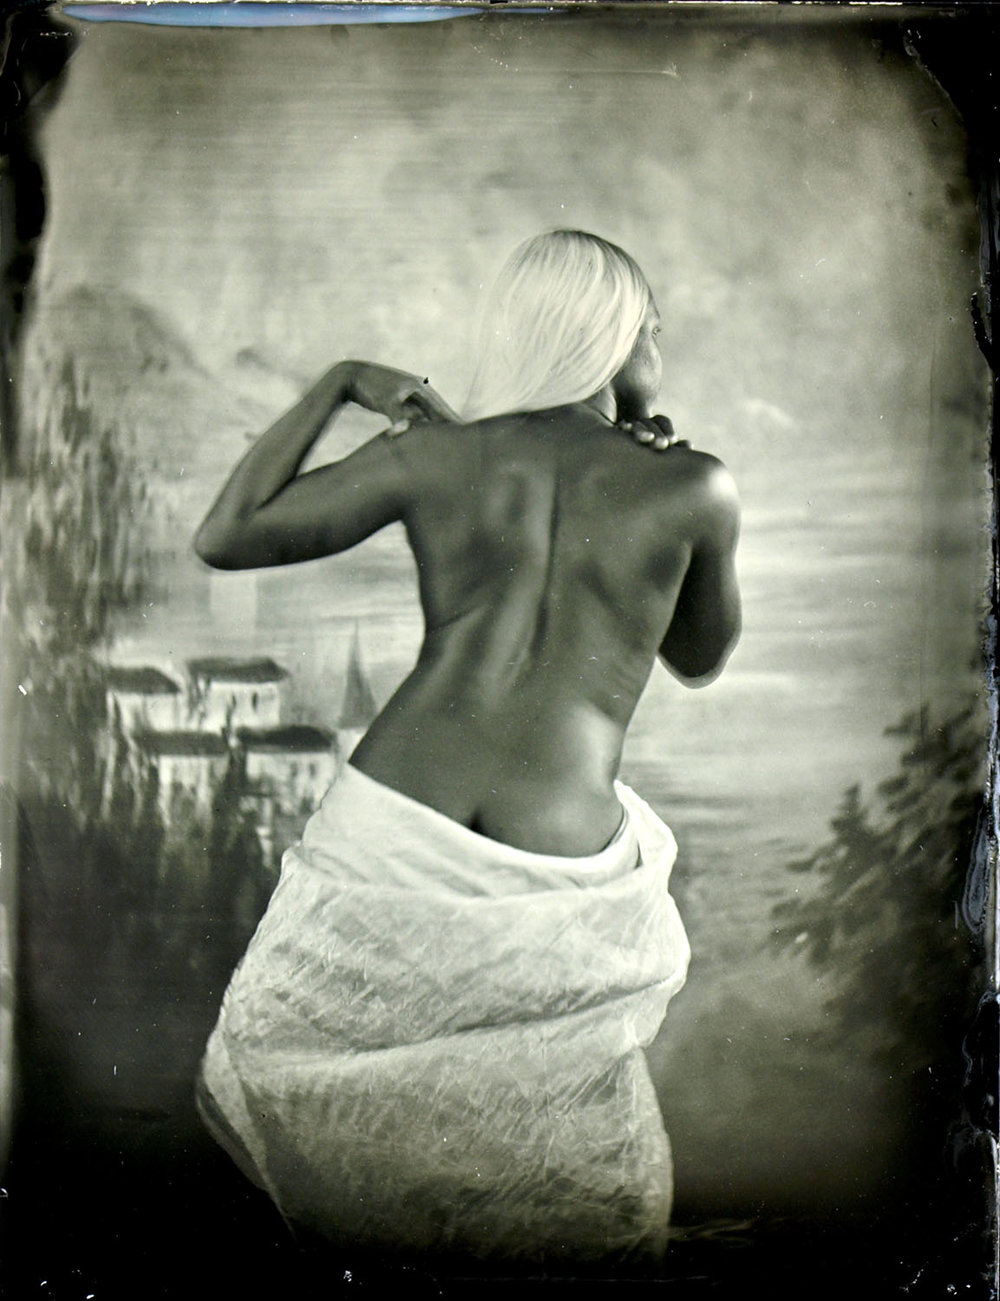 Title : Venus in reverse  By:  James Denton  baileydentonphoto.com